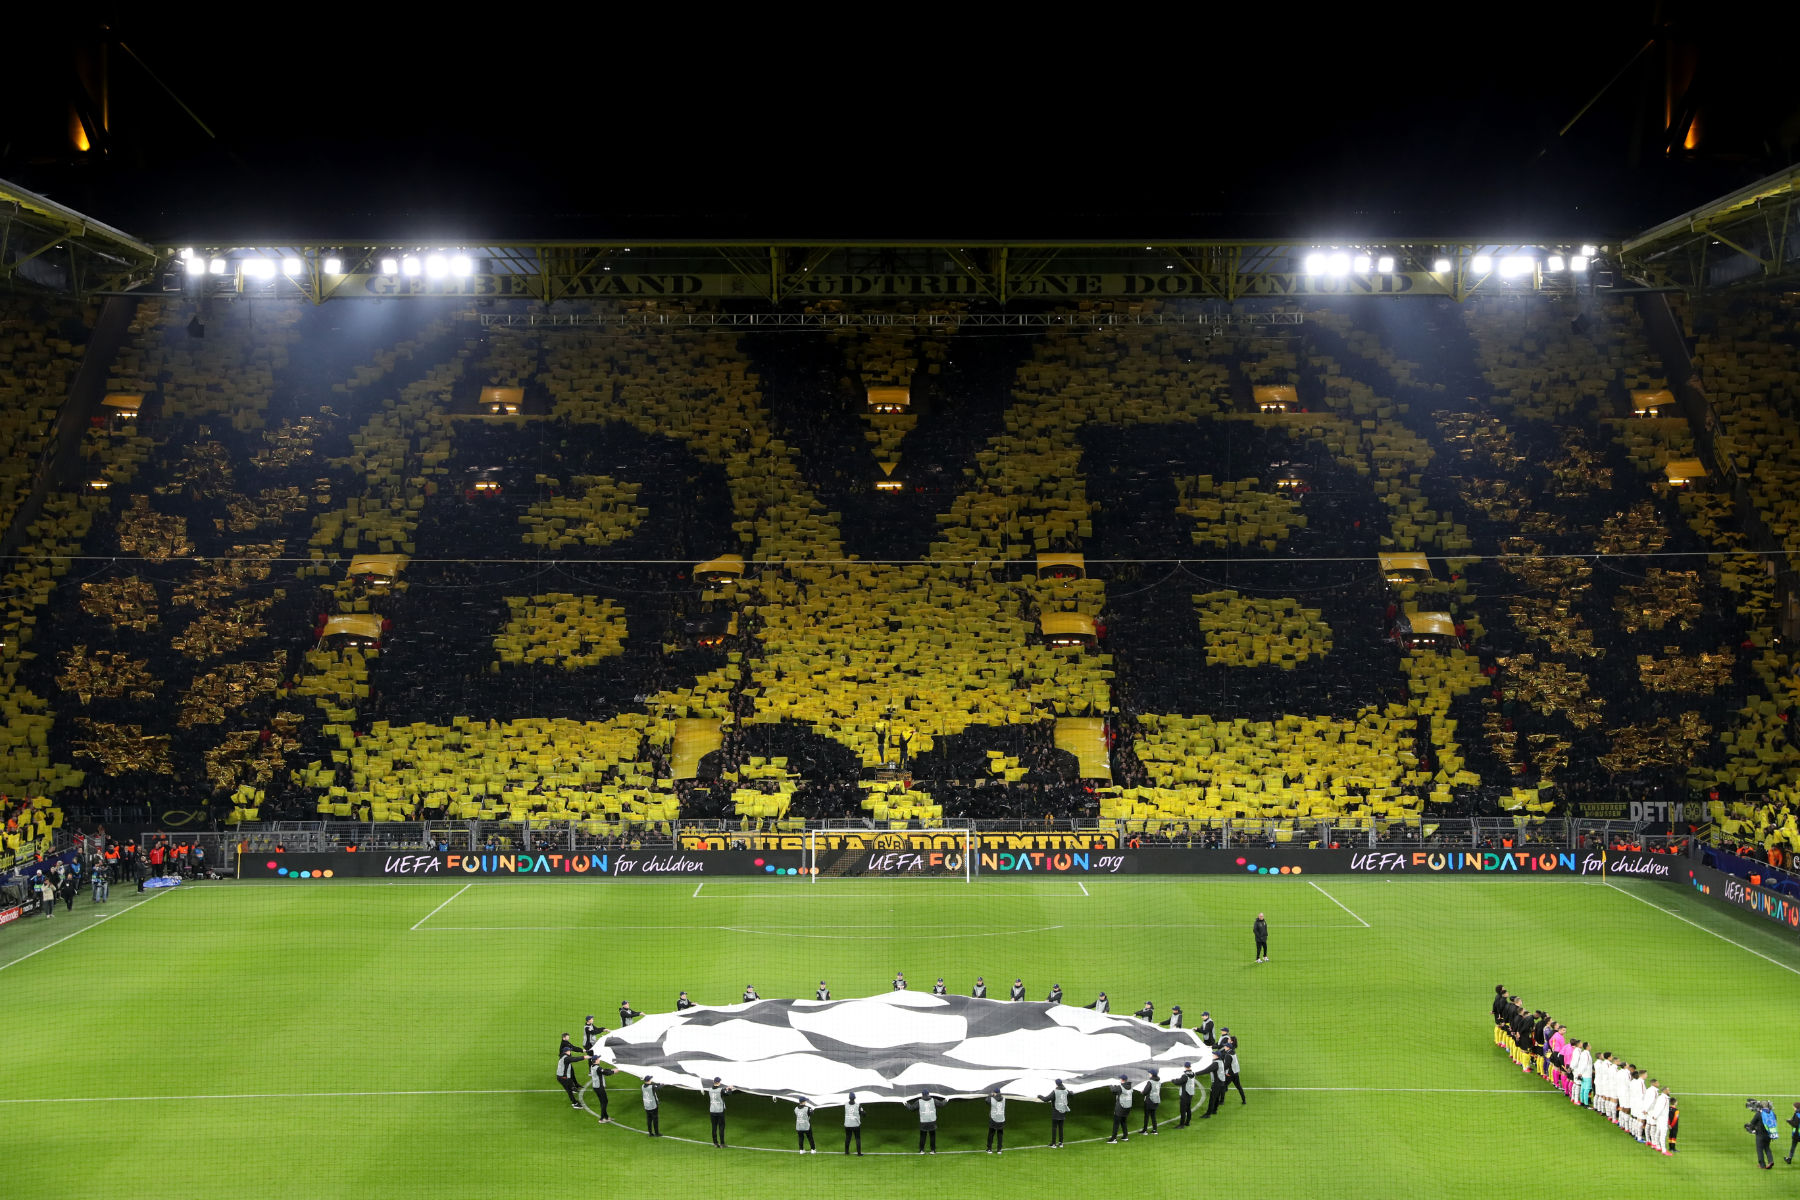 Video: A PSG Fan's View of Dortmund's Notorious Yellow ...